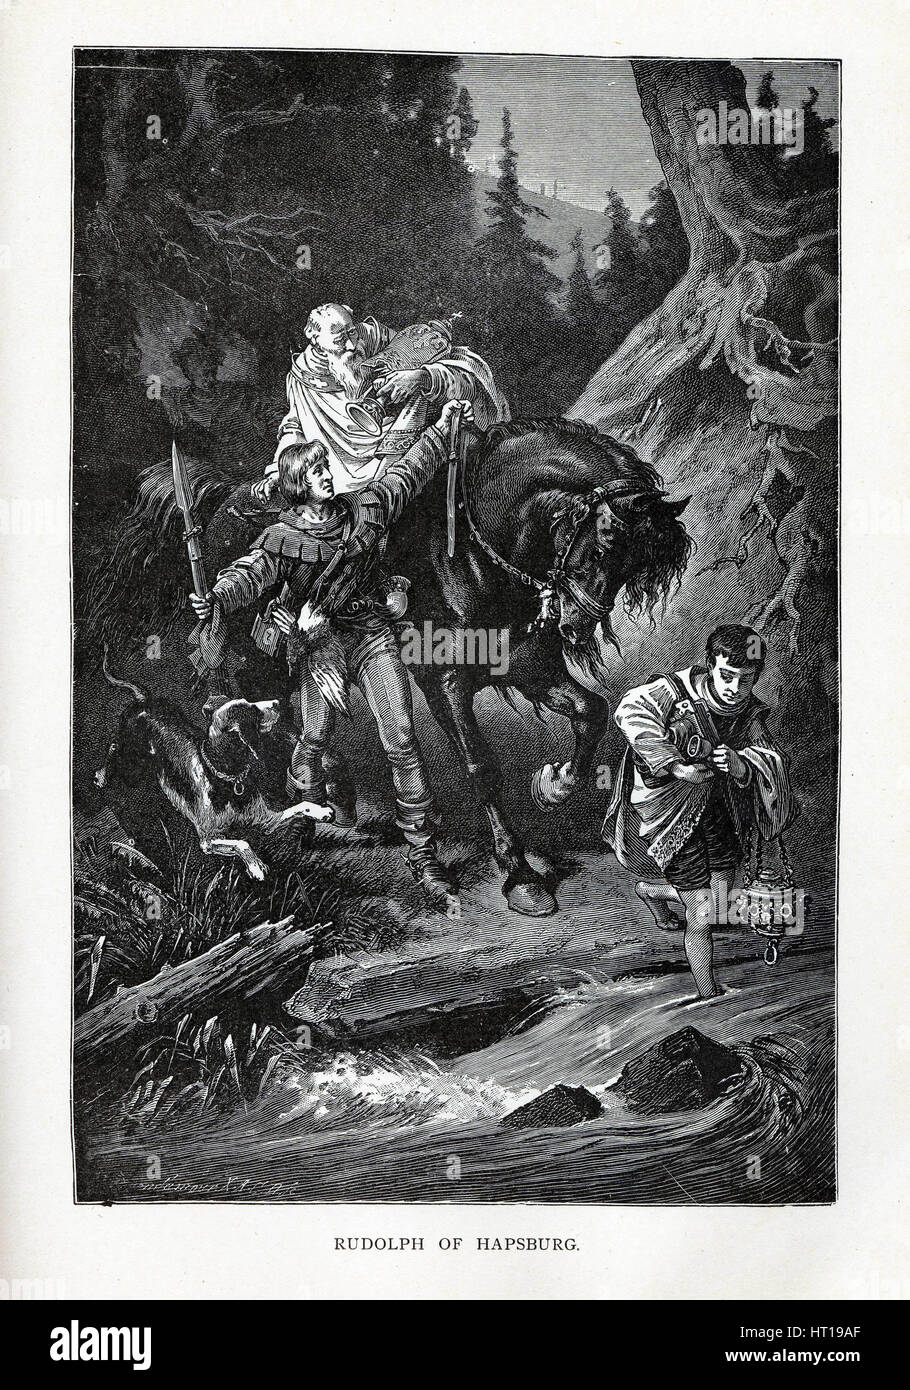 Rudolph of Habsburg and the Priest, 1882. Artist: Brend'amour, Richard (1831-1915) - Stock Image